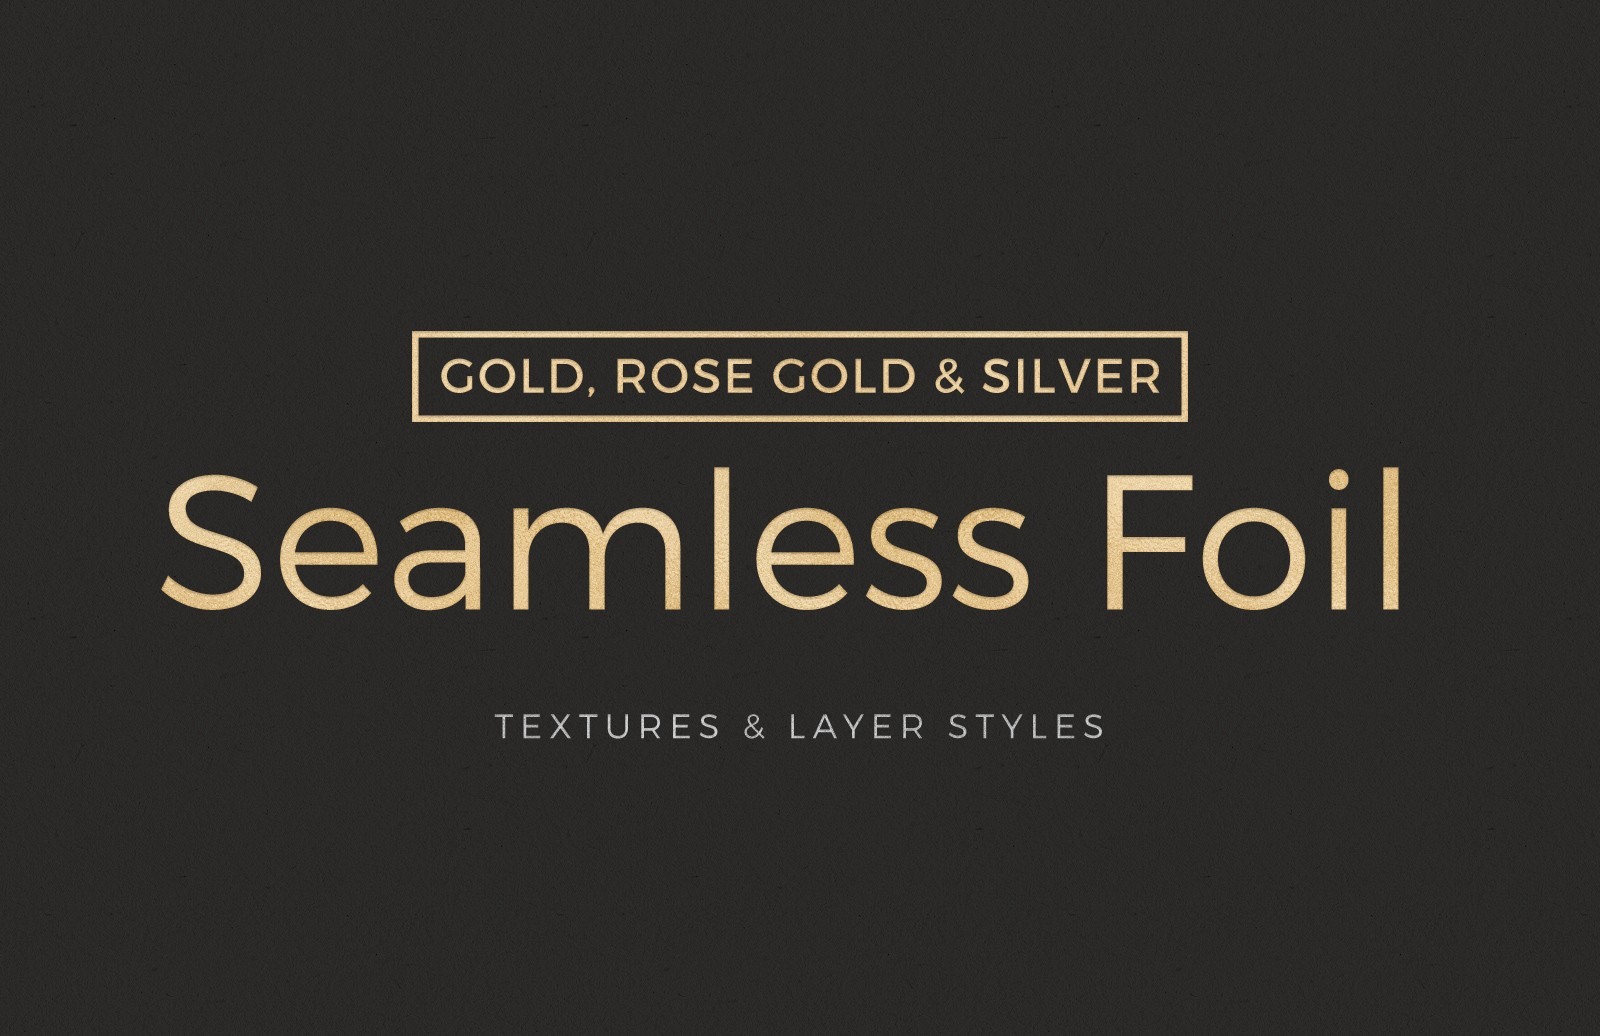 Seamless Foil Textures & Layer Styles 2